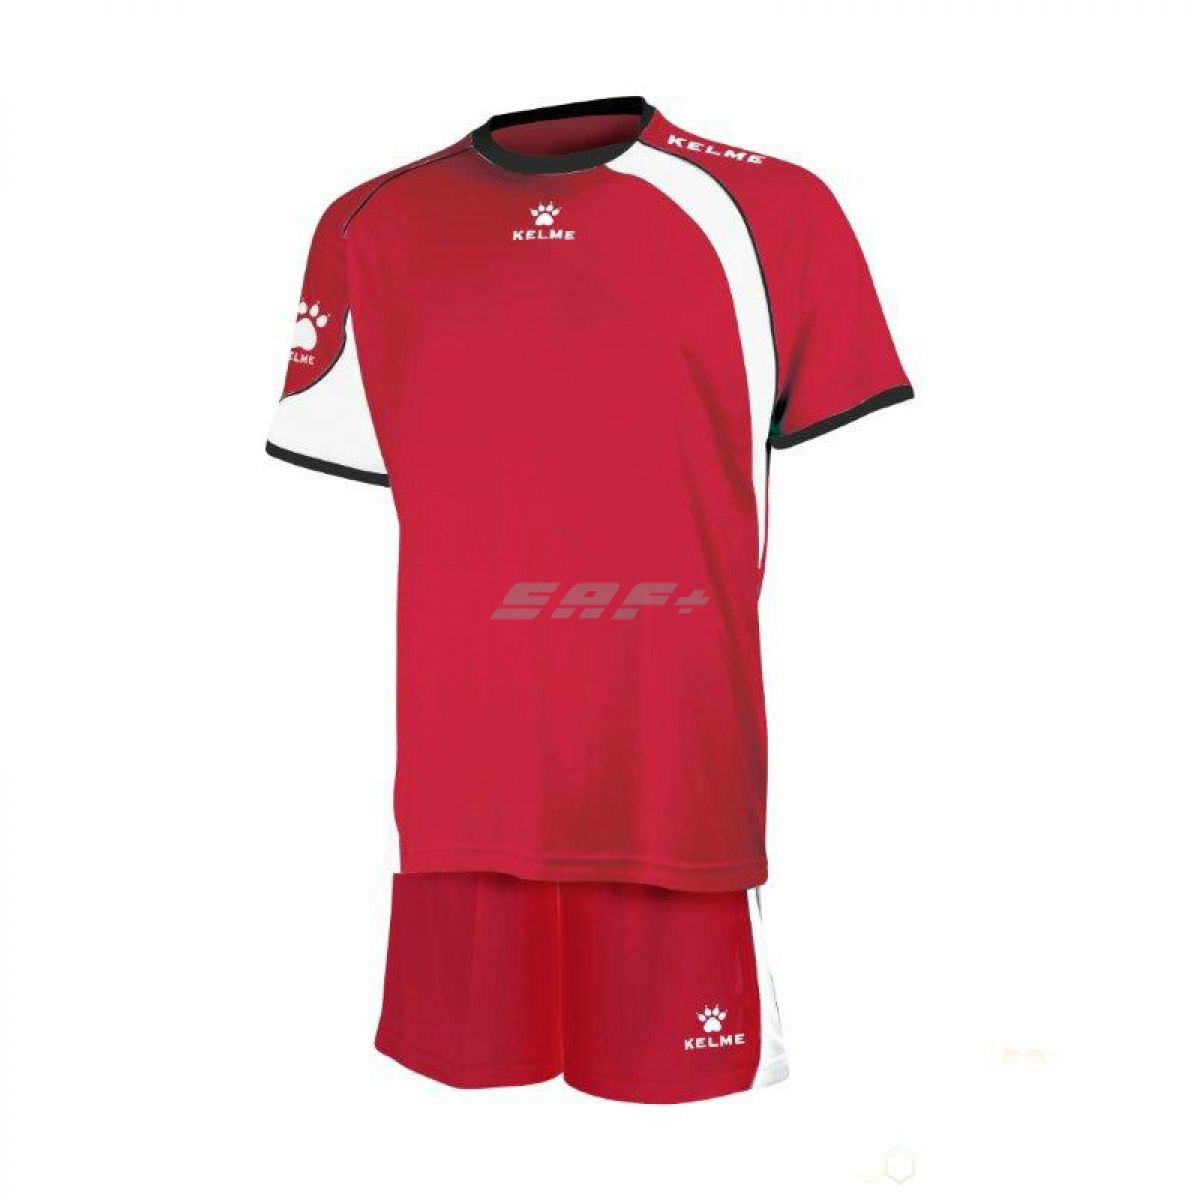 Форма футбольная Kelme Cartago Set